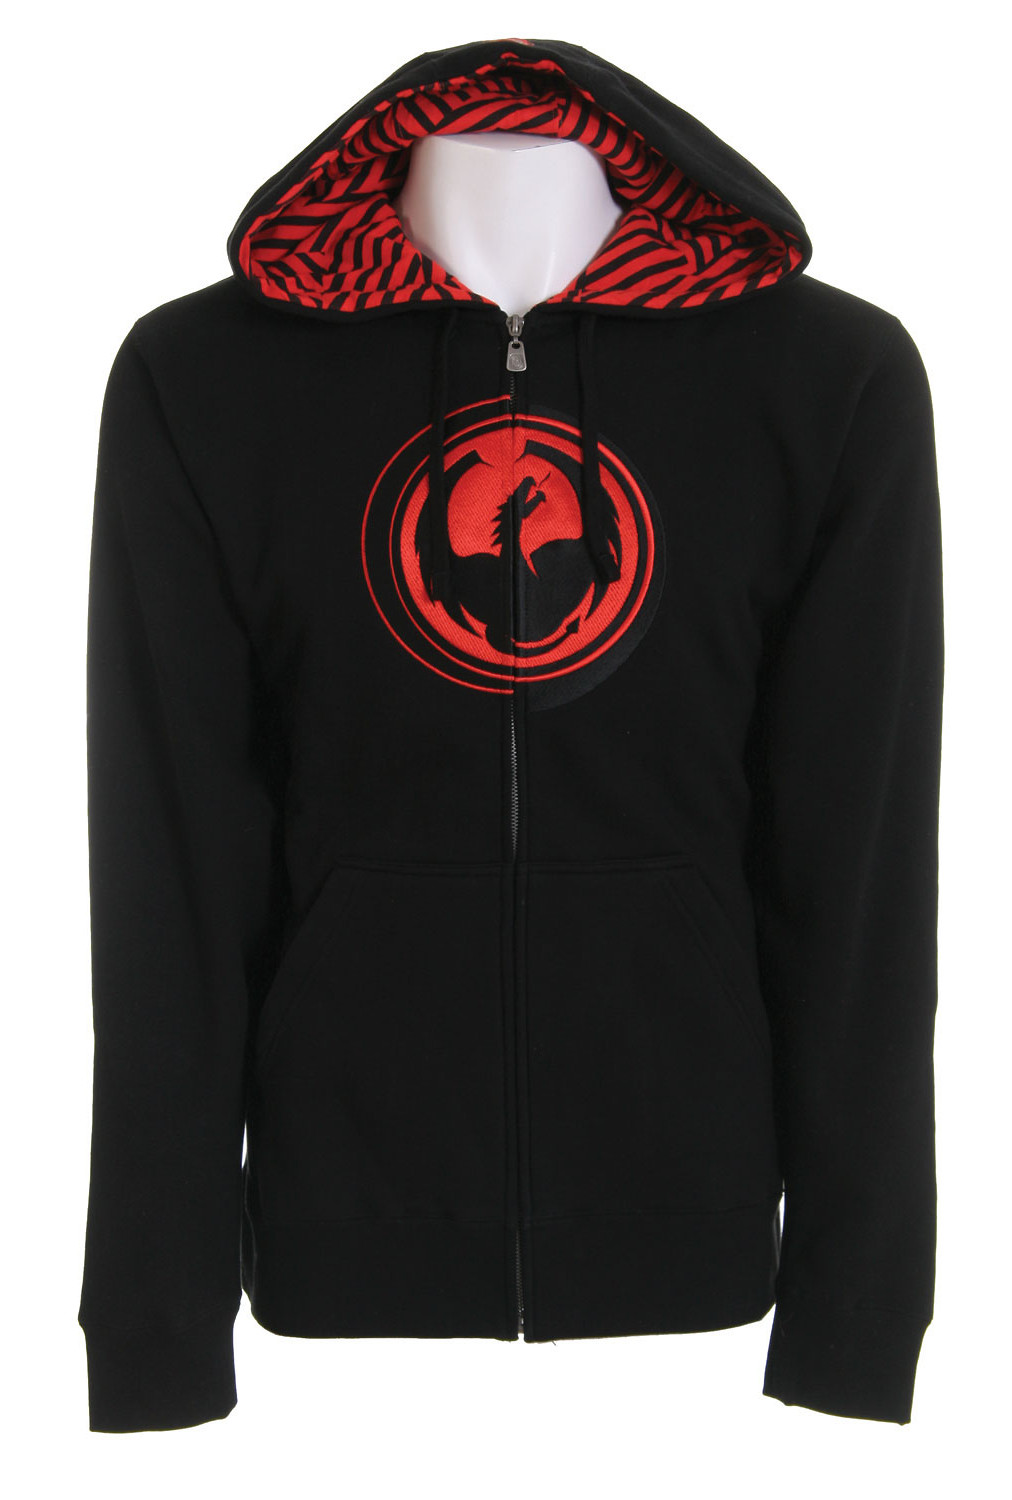 Dragon Stripped Zip Hoodie Black  drag-stripped-hd-blk-08.jpg